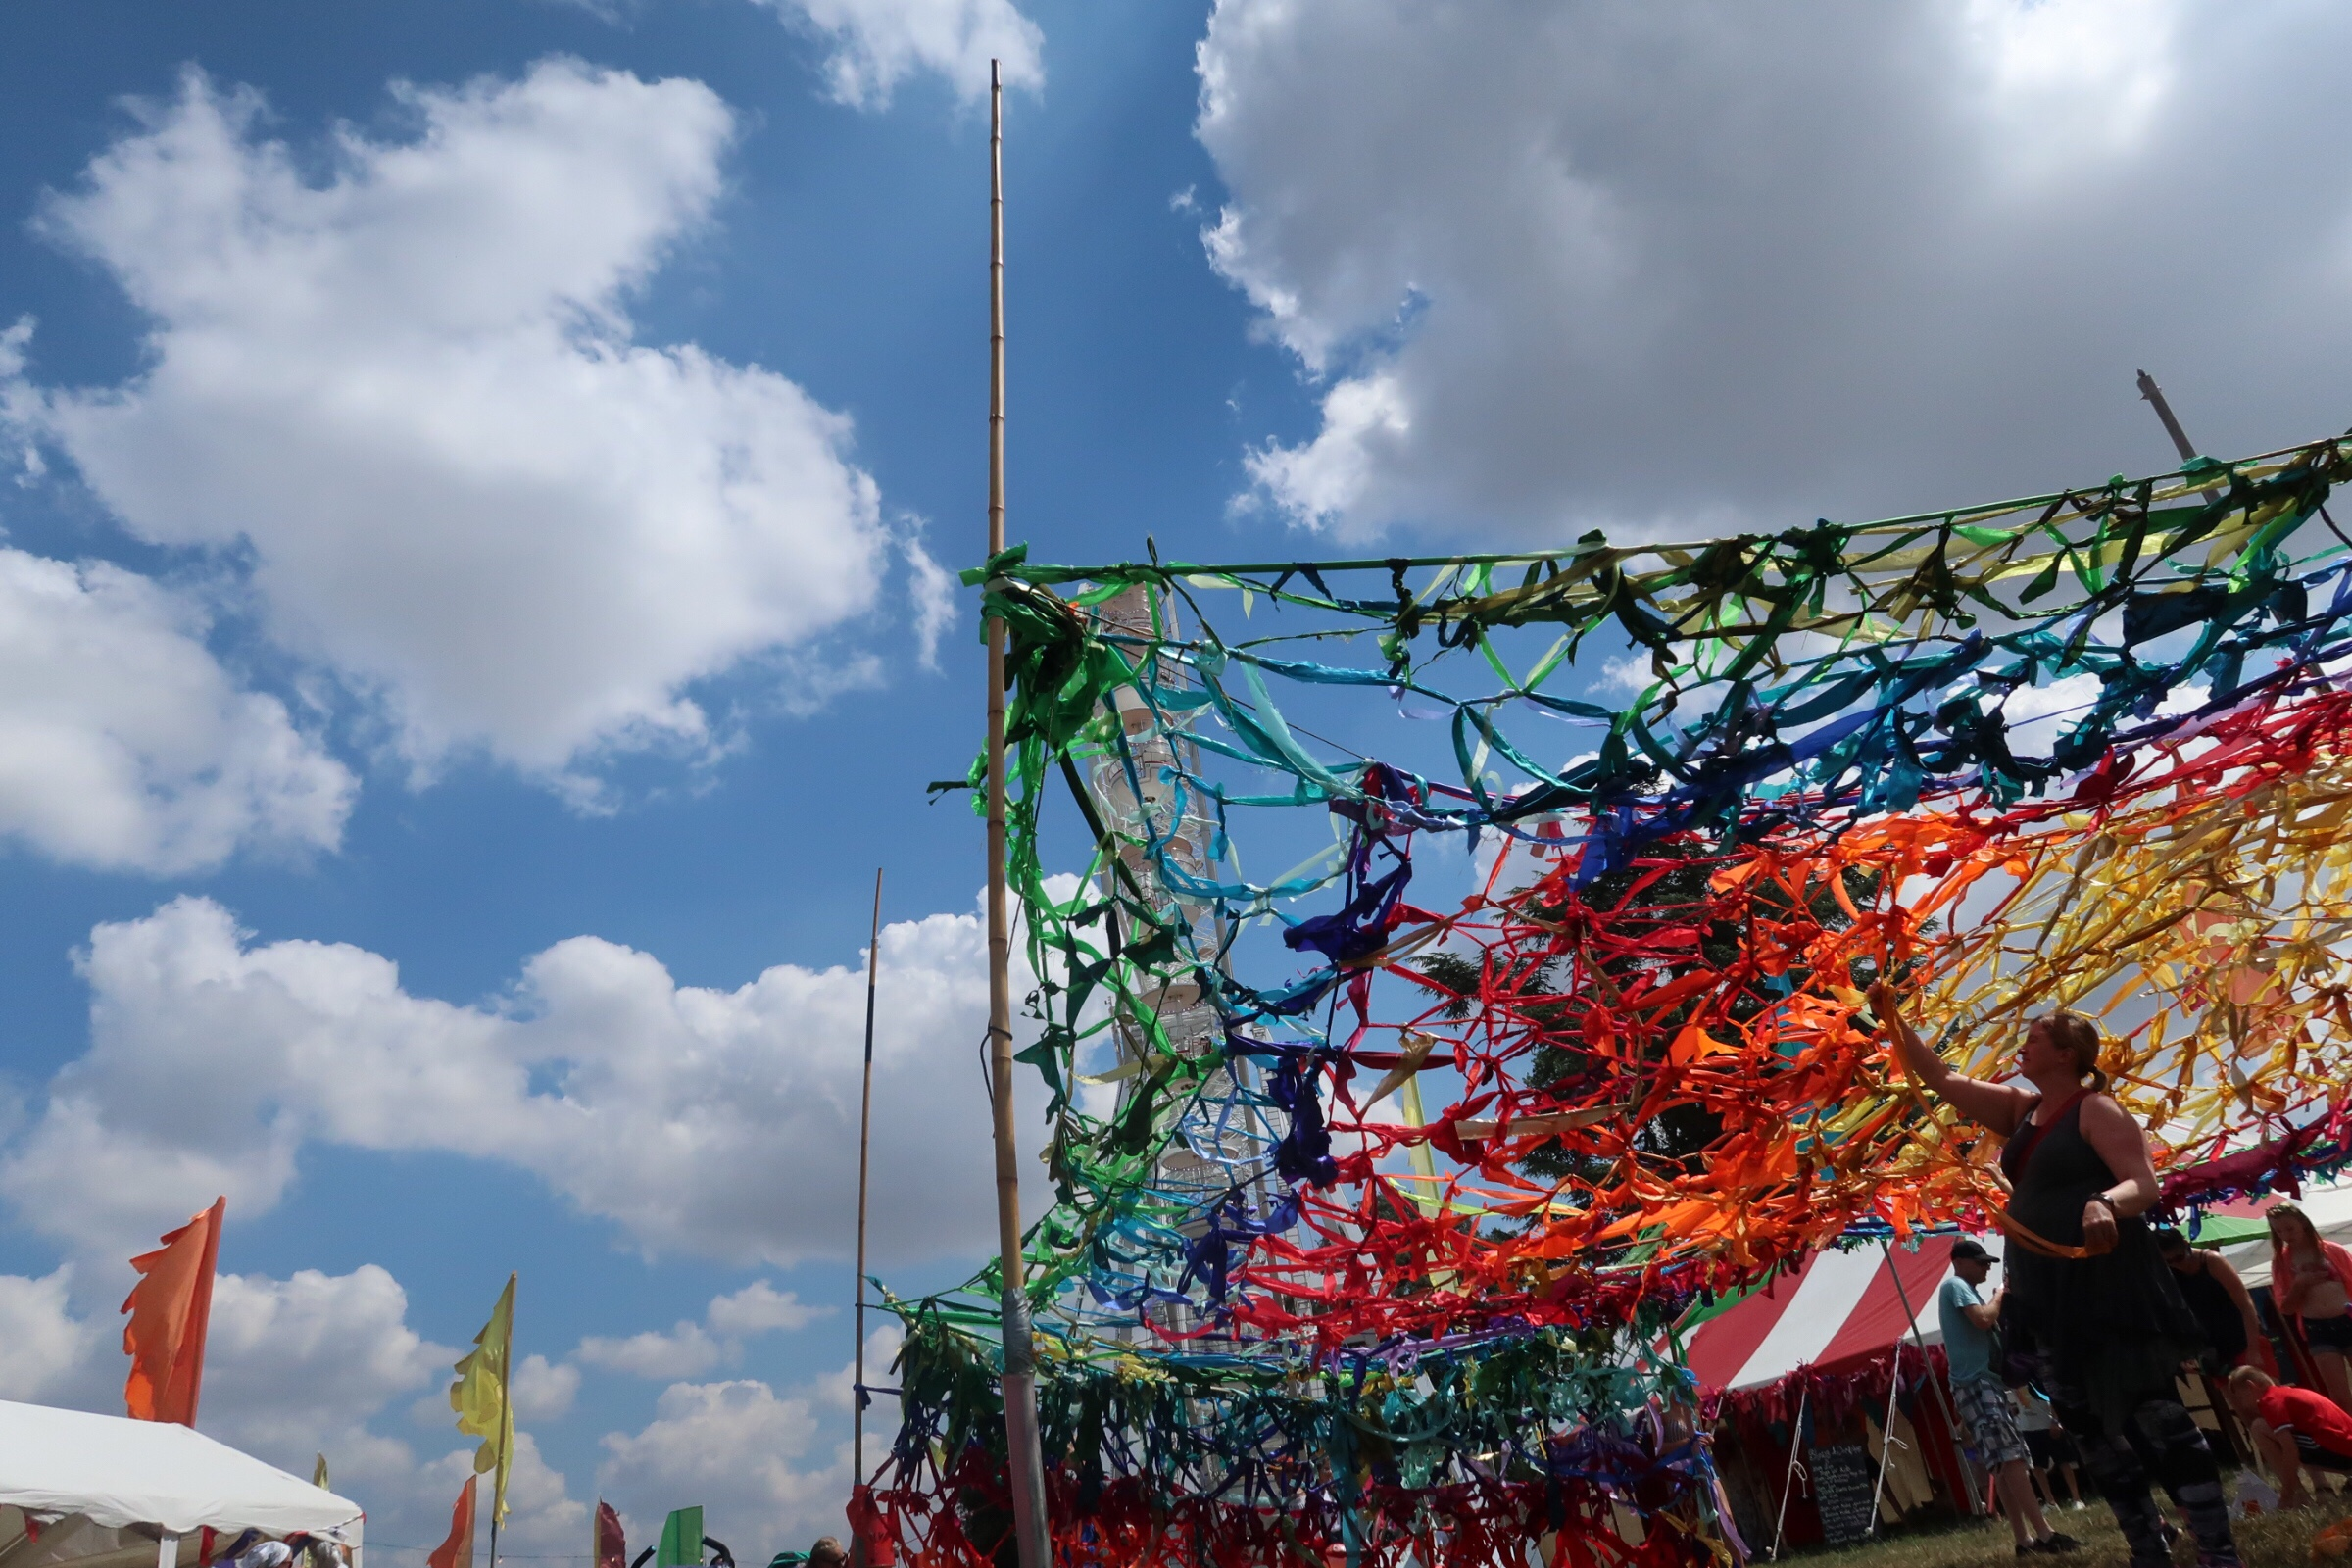 A lady adding to the brightly coloured rainbow netting canopy at Cornbury Festival.